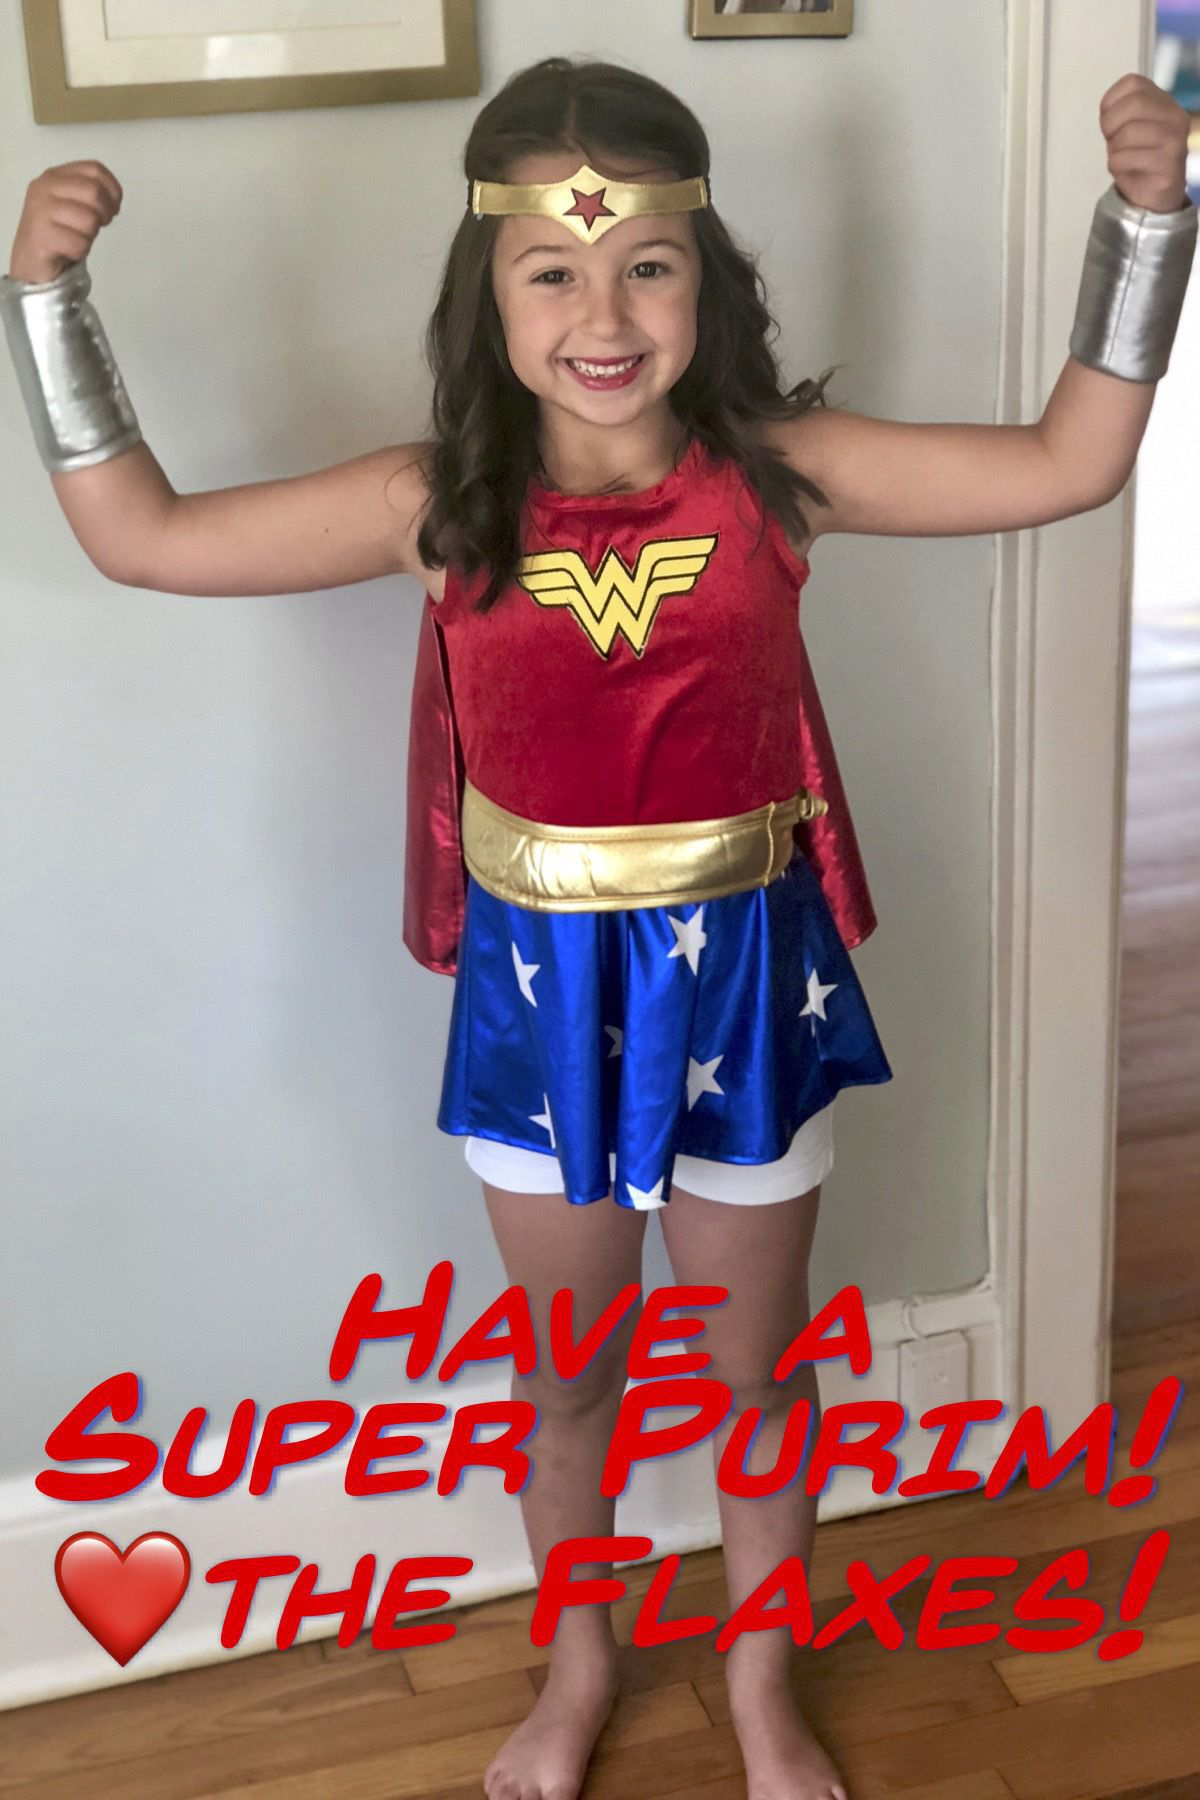 "Purim card showing my daughter wearing a Wonder Woman costume, smiling, with her arms in the air triumphantly. Caption along the bottom says ""Have a Super Purim! ❤️ the Flaxes!"""